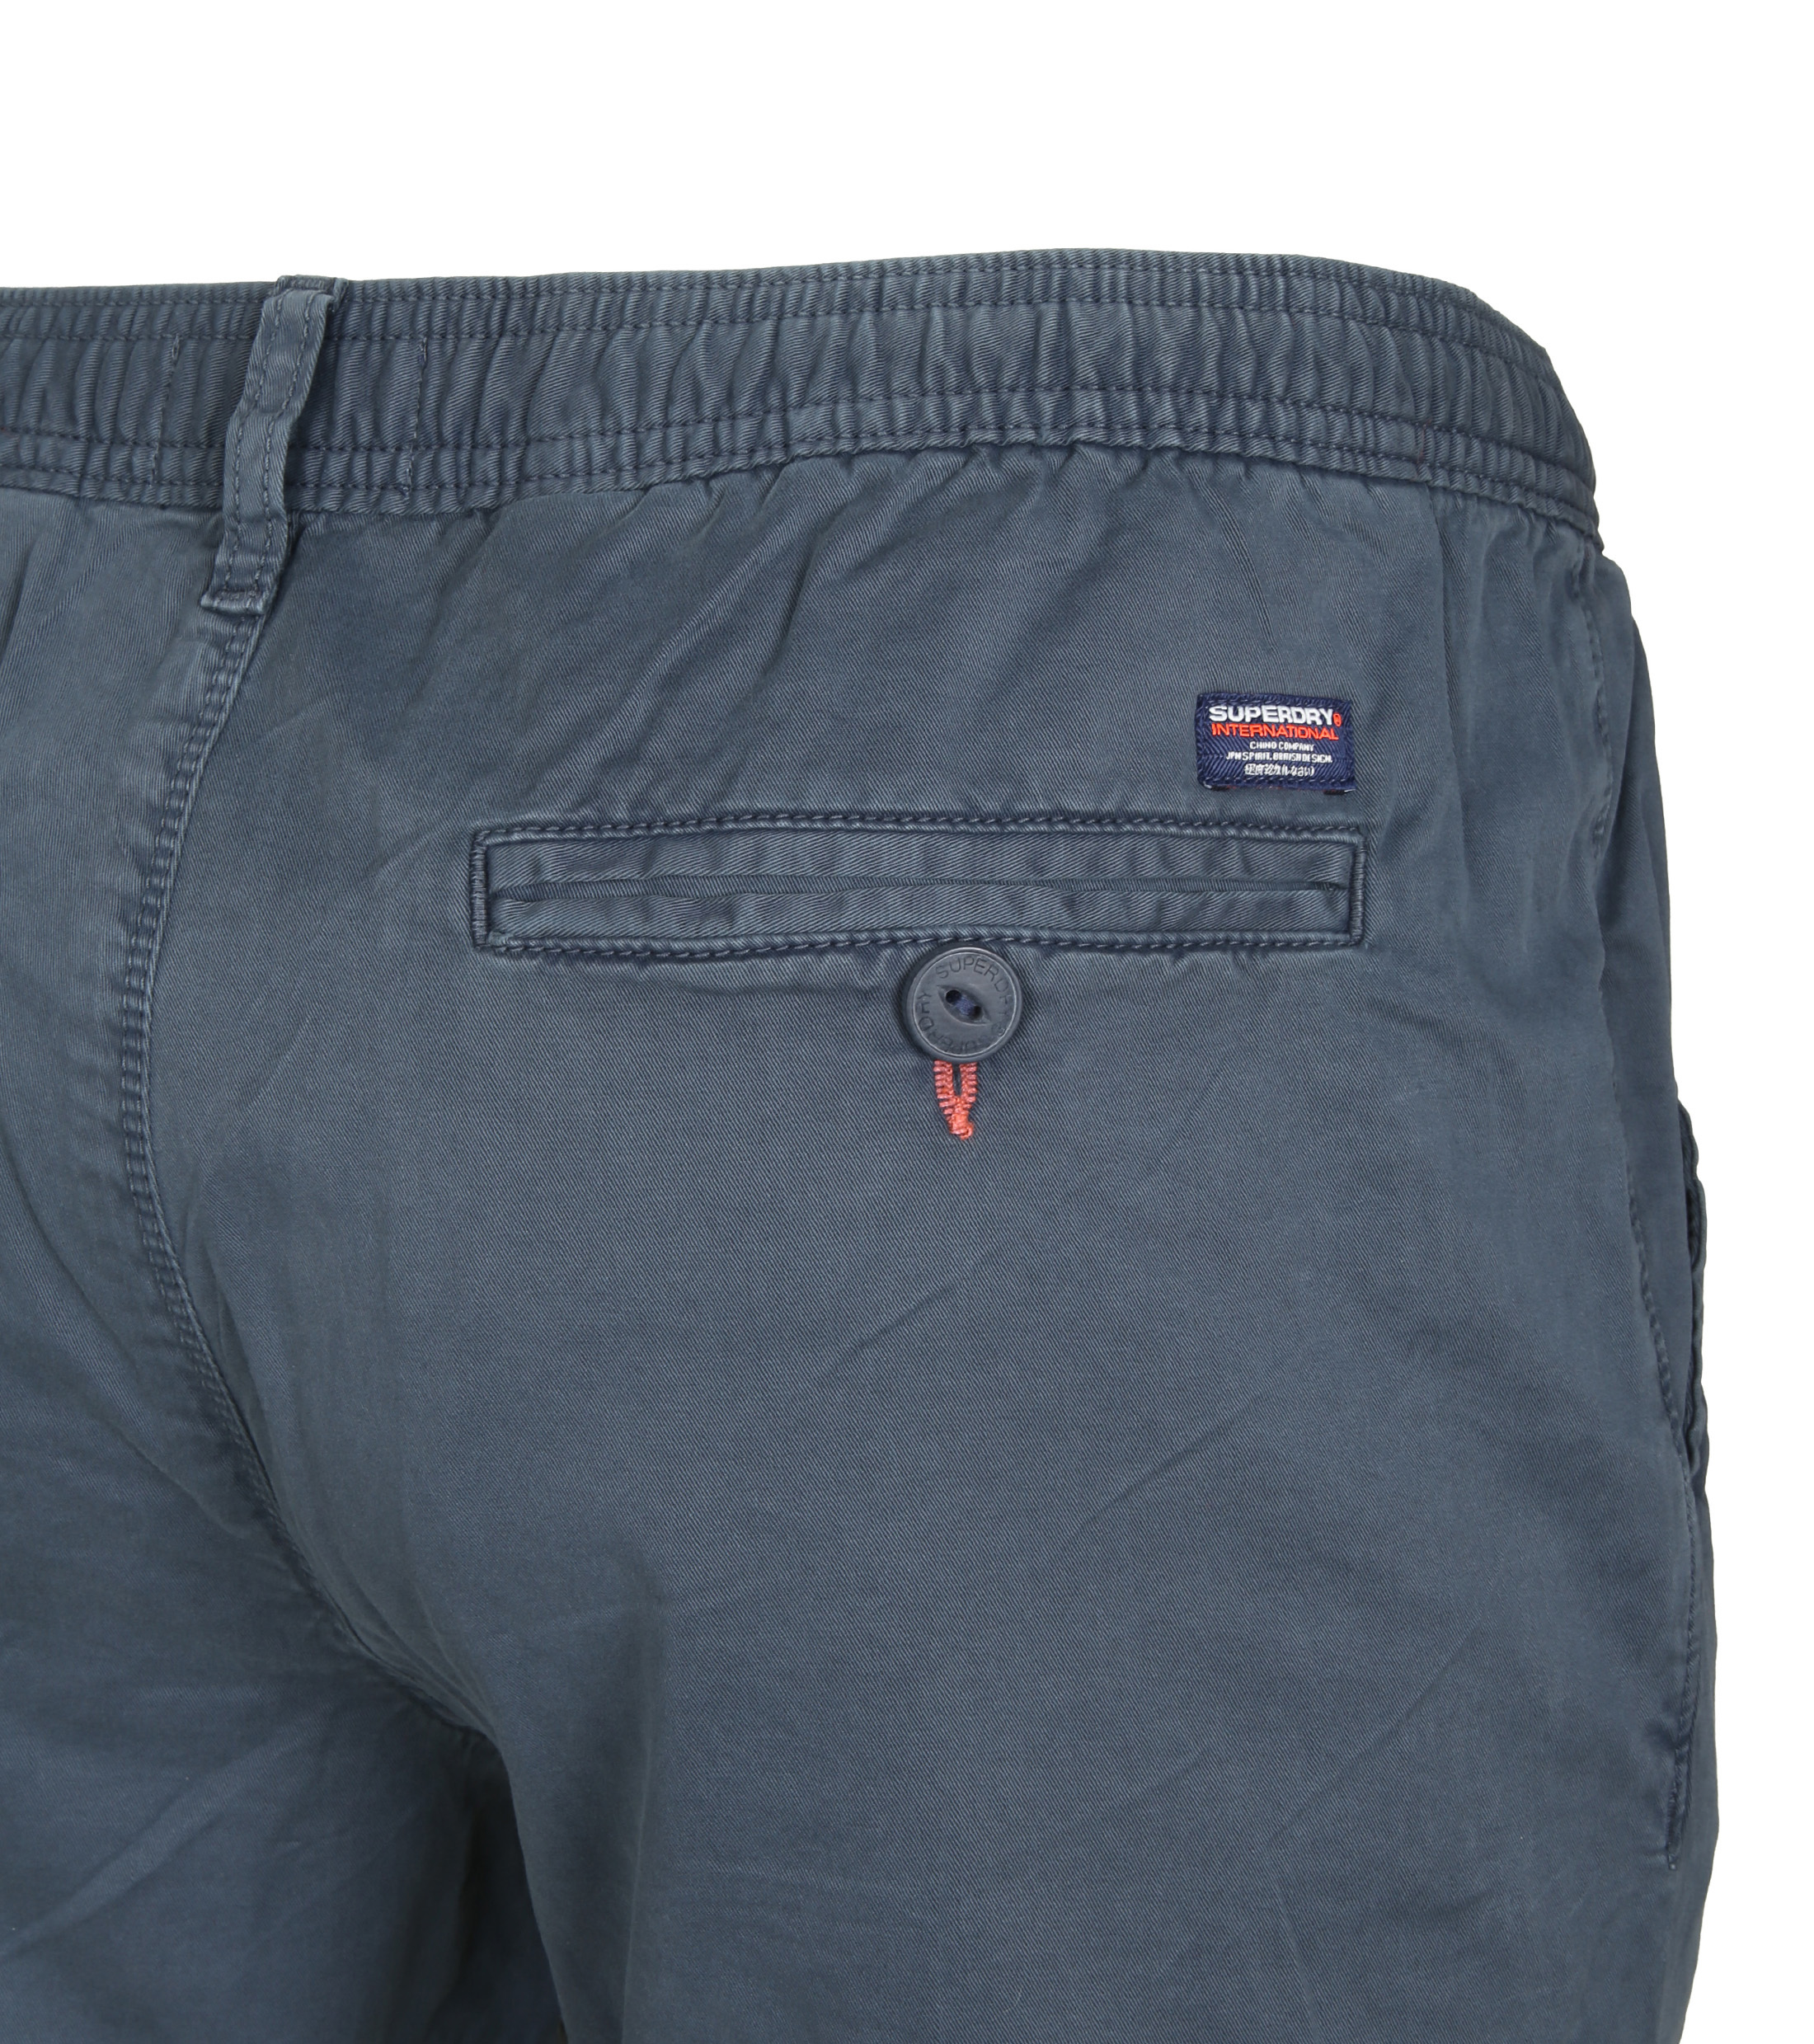 Superdry Short Uni Navy foto 1